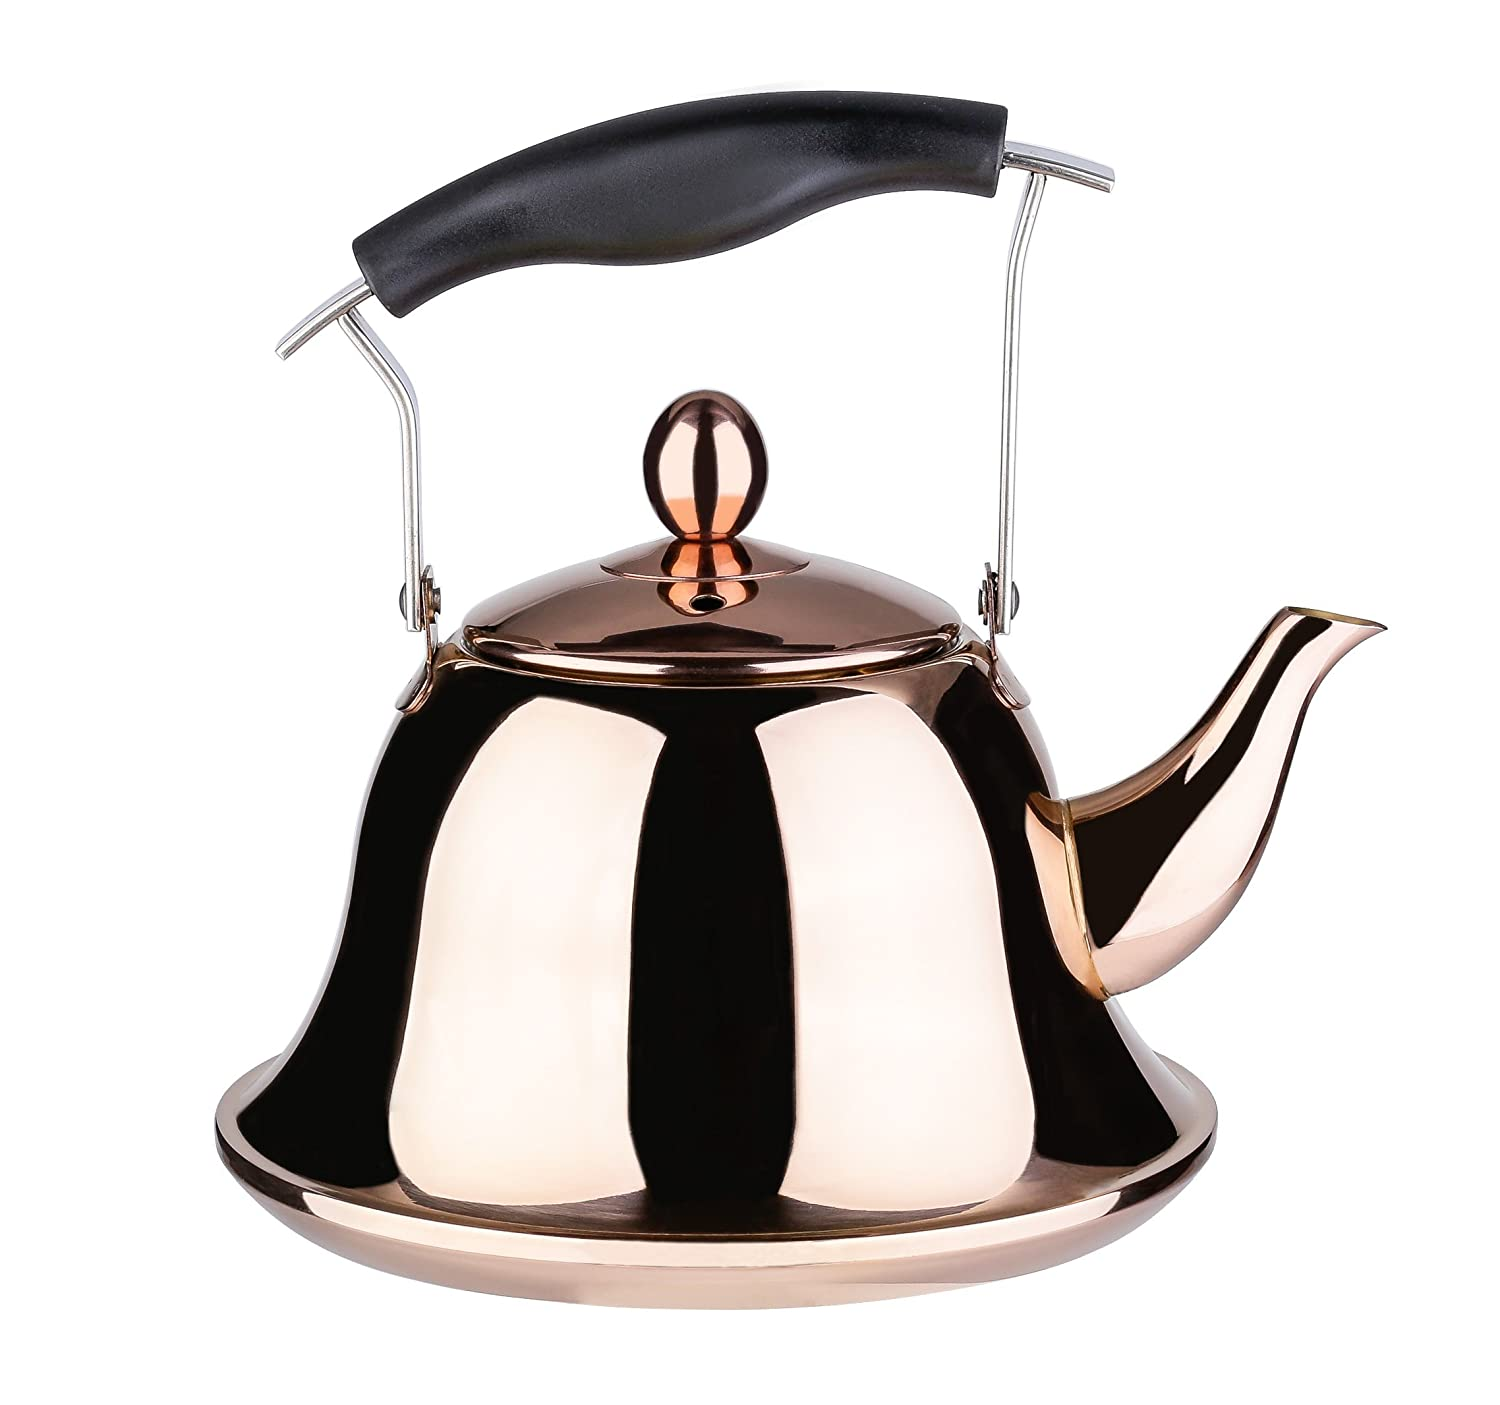 Onlycooker Whistling Tea Kettle 3 Liter Stainless Steel Stovetop Copper Teakettle Teapot for Induction/Gas Stove Top Modern Rose Gold Tea Pot/Maker Water Boiling 3.2 Quart / 100 Ounce